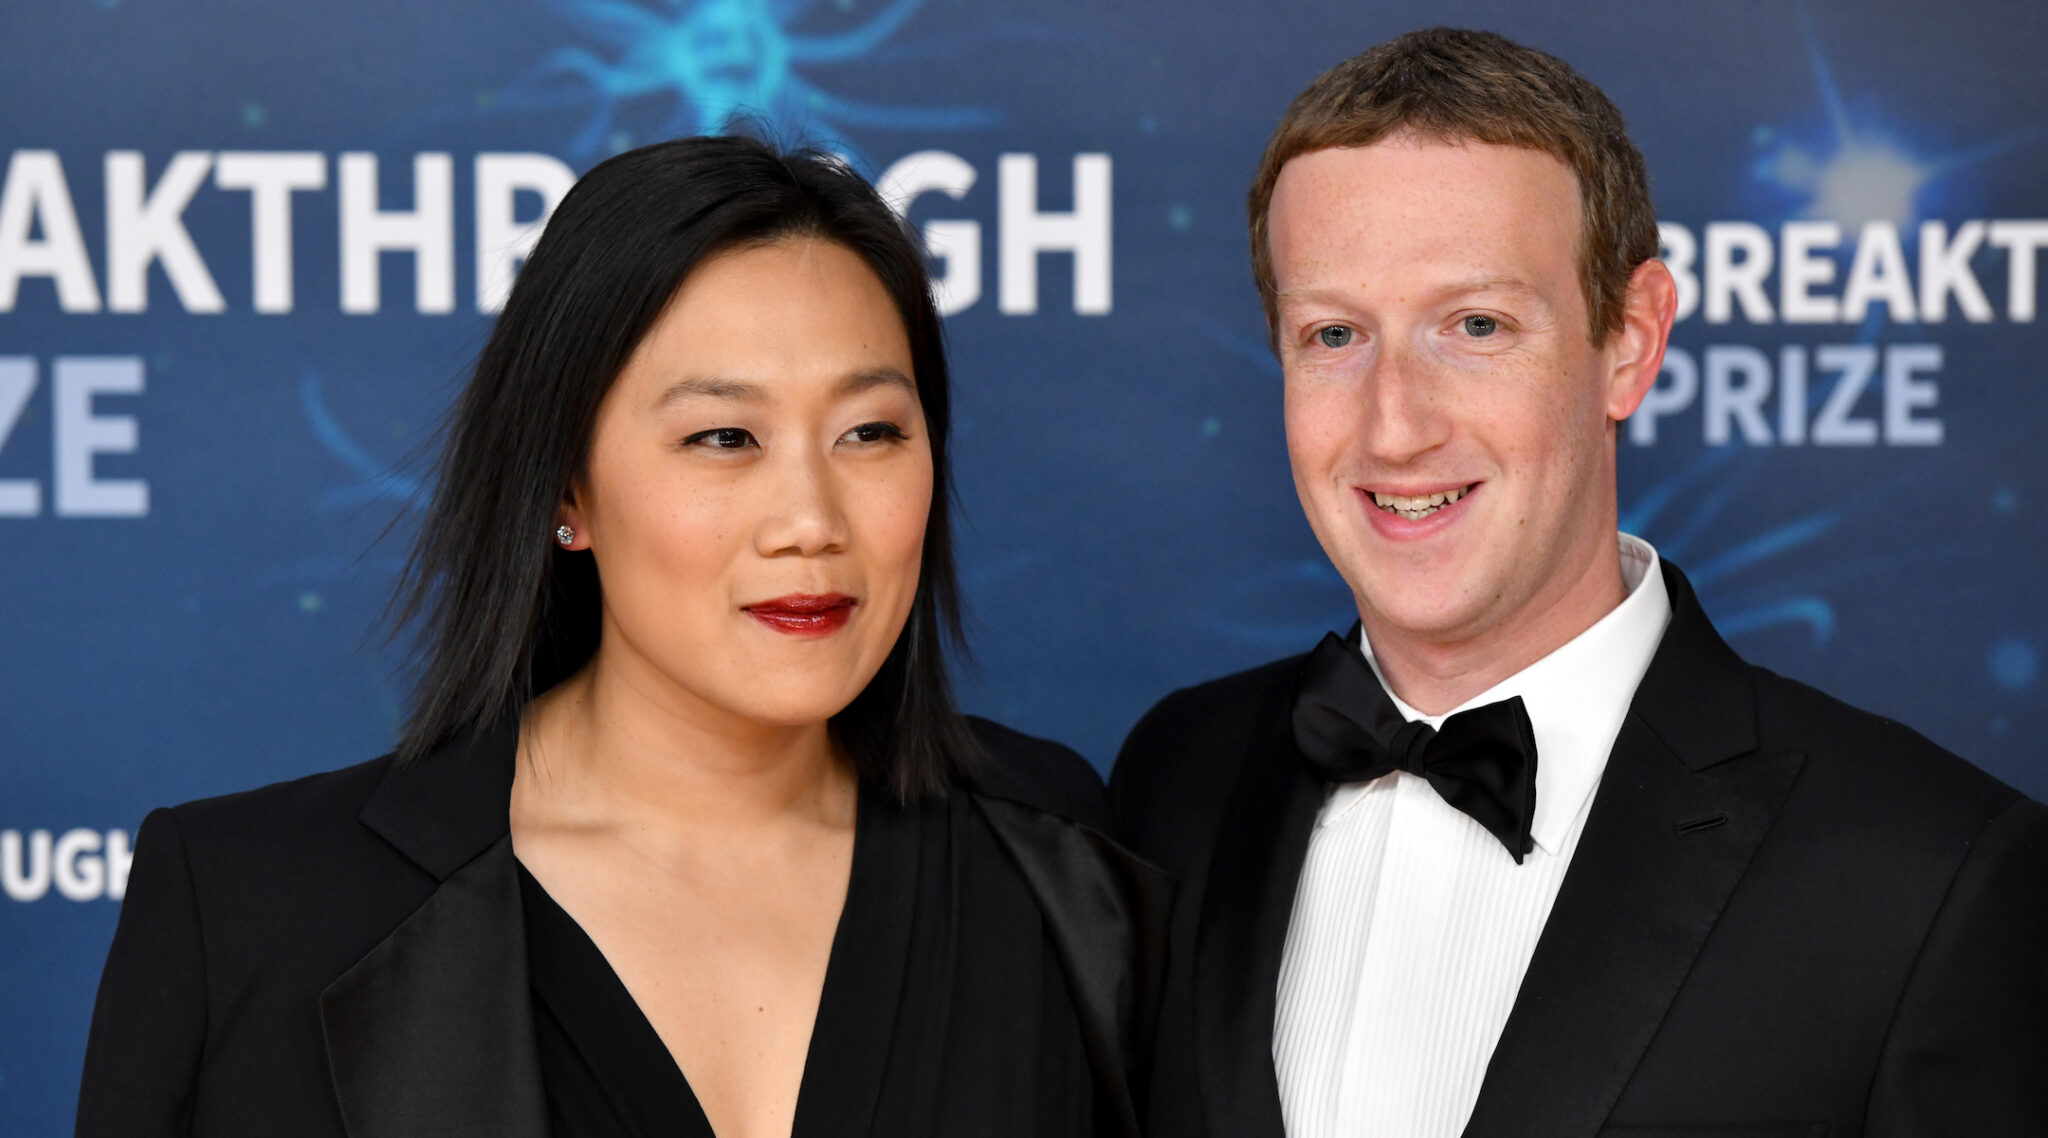 Priscilla Chan and Mark Zuckerberg attend the 2020 Breakthrough Prize Red Carpet at NASA Ames Research Center in Mountain View, California on Nov. 3, 2019. (Photo/JTA-Ian Tuttle-Getty Images for Breakthrough Prize)